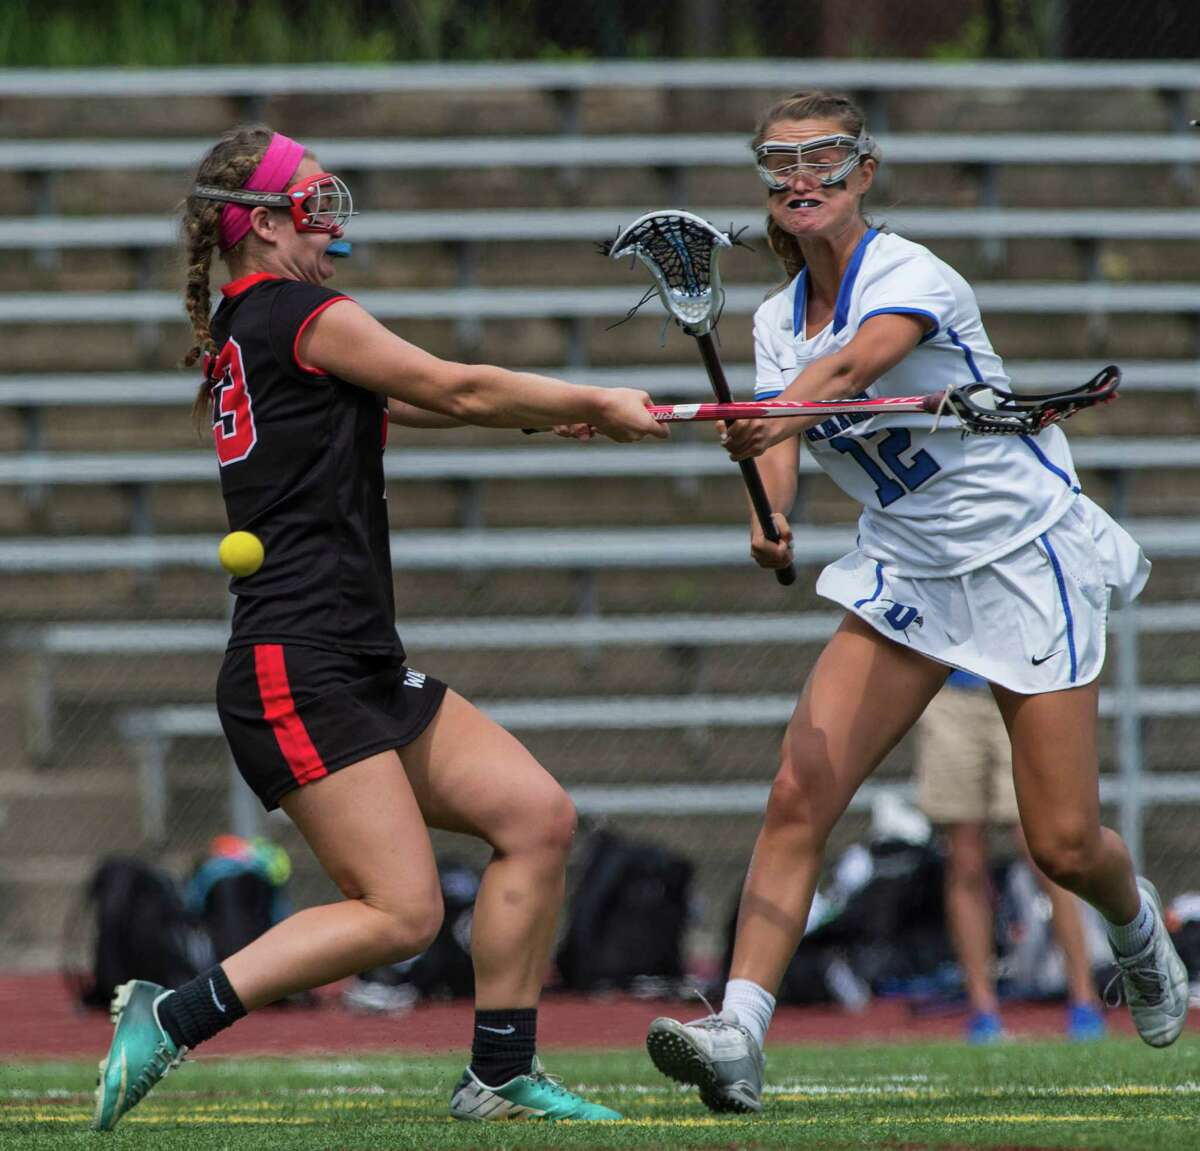 Darien High School's Susannah Ropp shoots and scores during the CIAC class L championship game against Fairfield Warde High School played at Jonathan Law High School, Milford, Conn. Saturday, June 11, 2016.